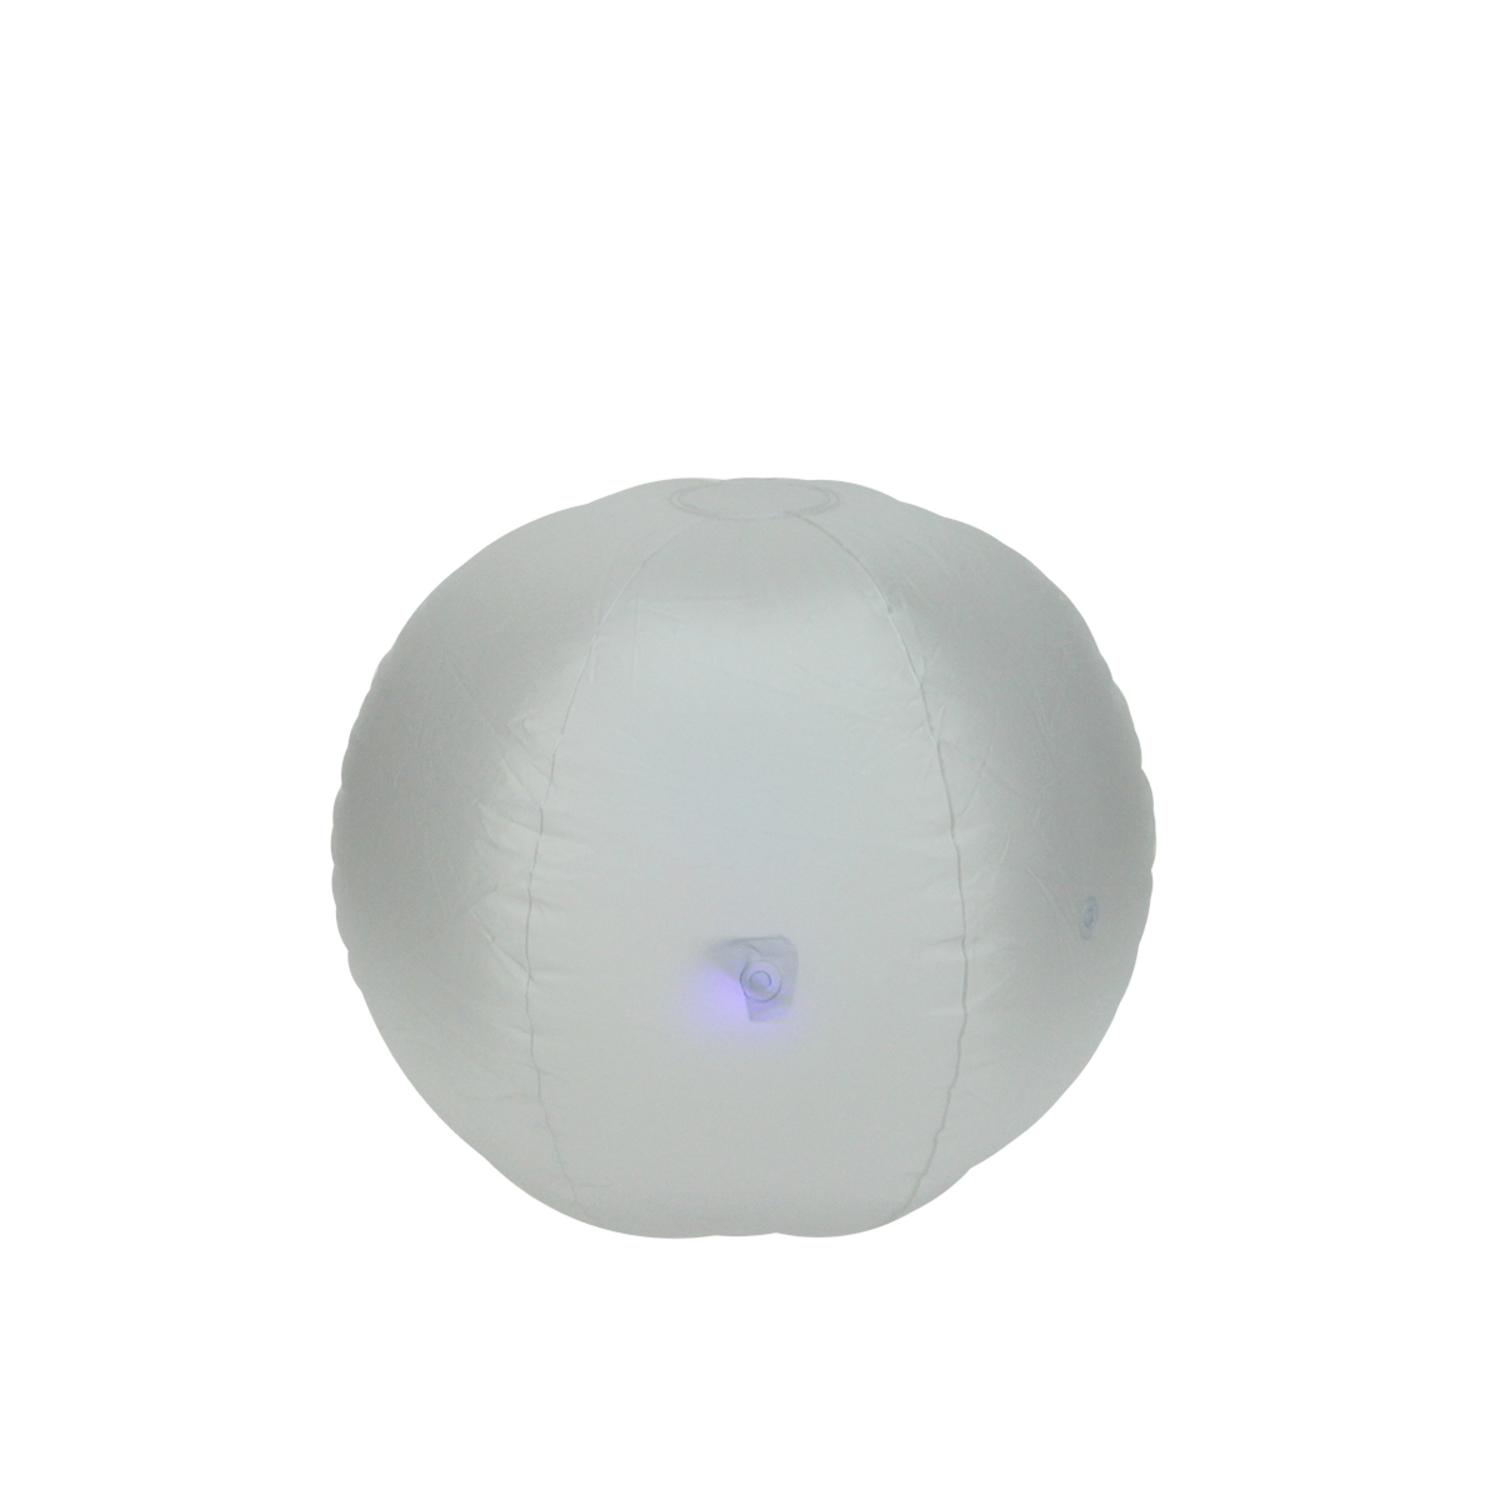 "16.5"" LED Lighted Inflatable Beach Ball Swimming Pool Toy by Pool Central"